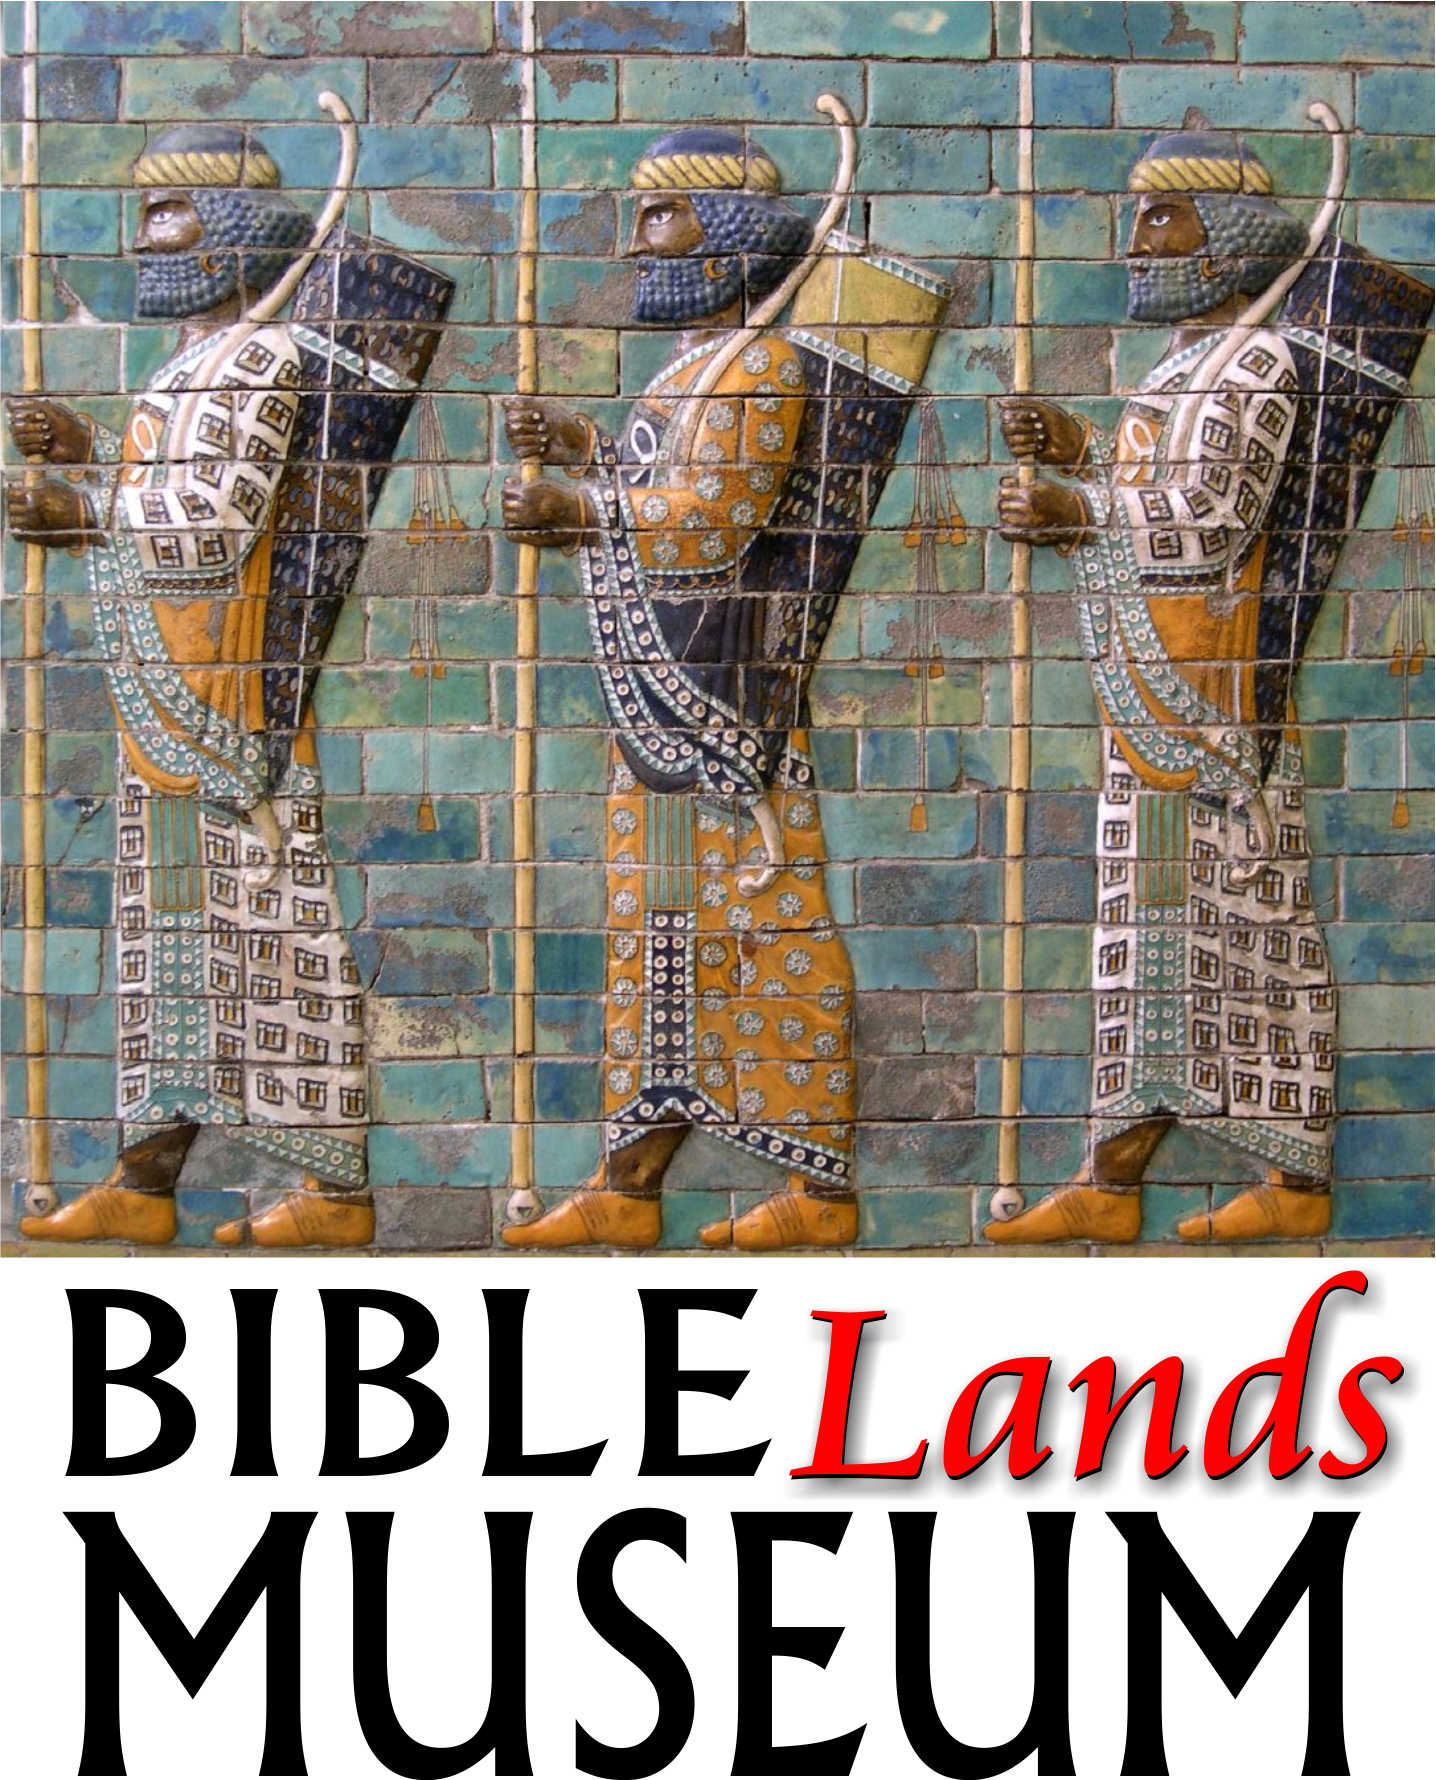 BIBLE LANDS MUSEUM TO TOUR FULTON, MISS. AUG. 29-31